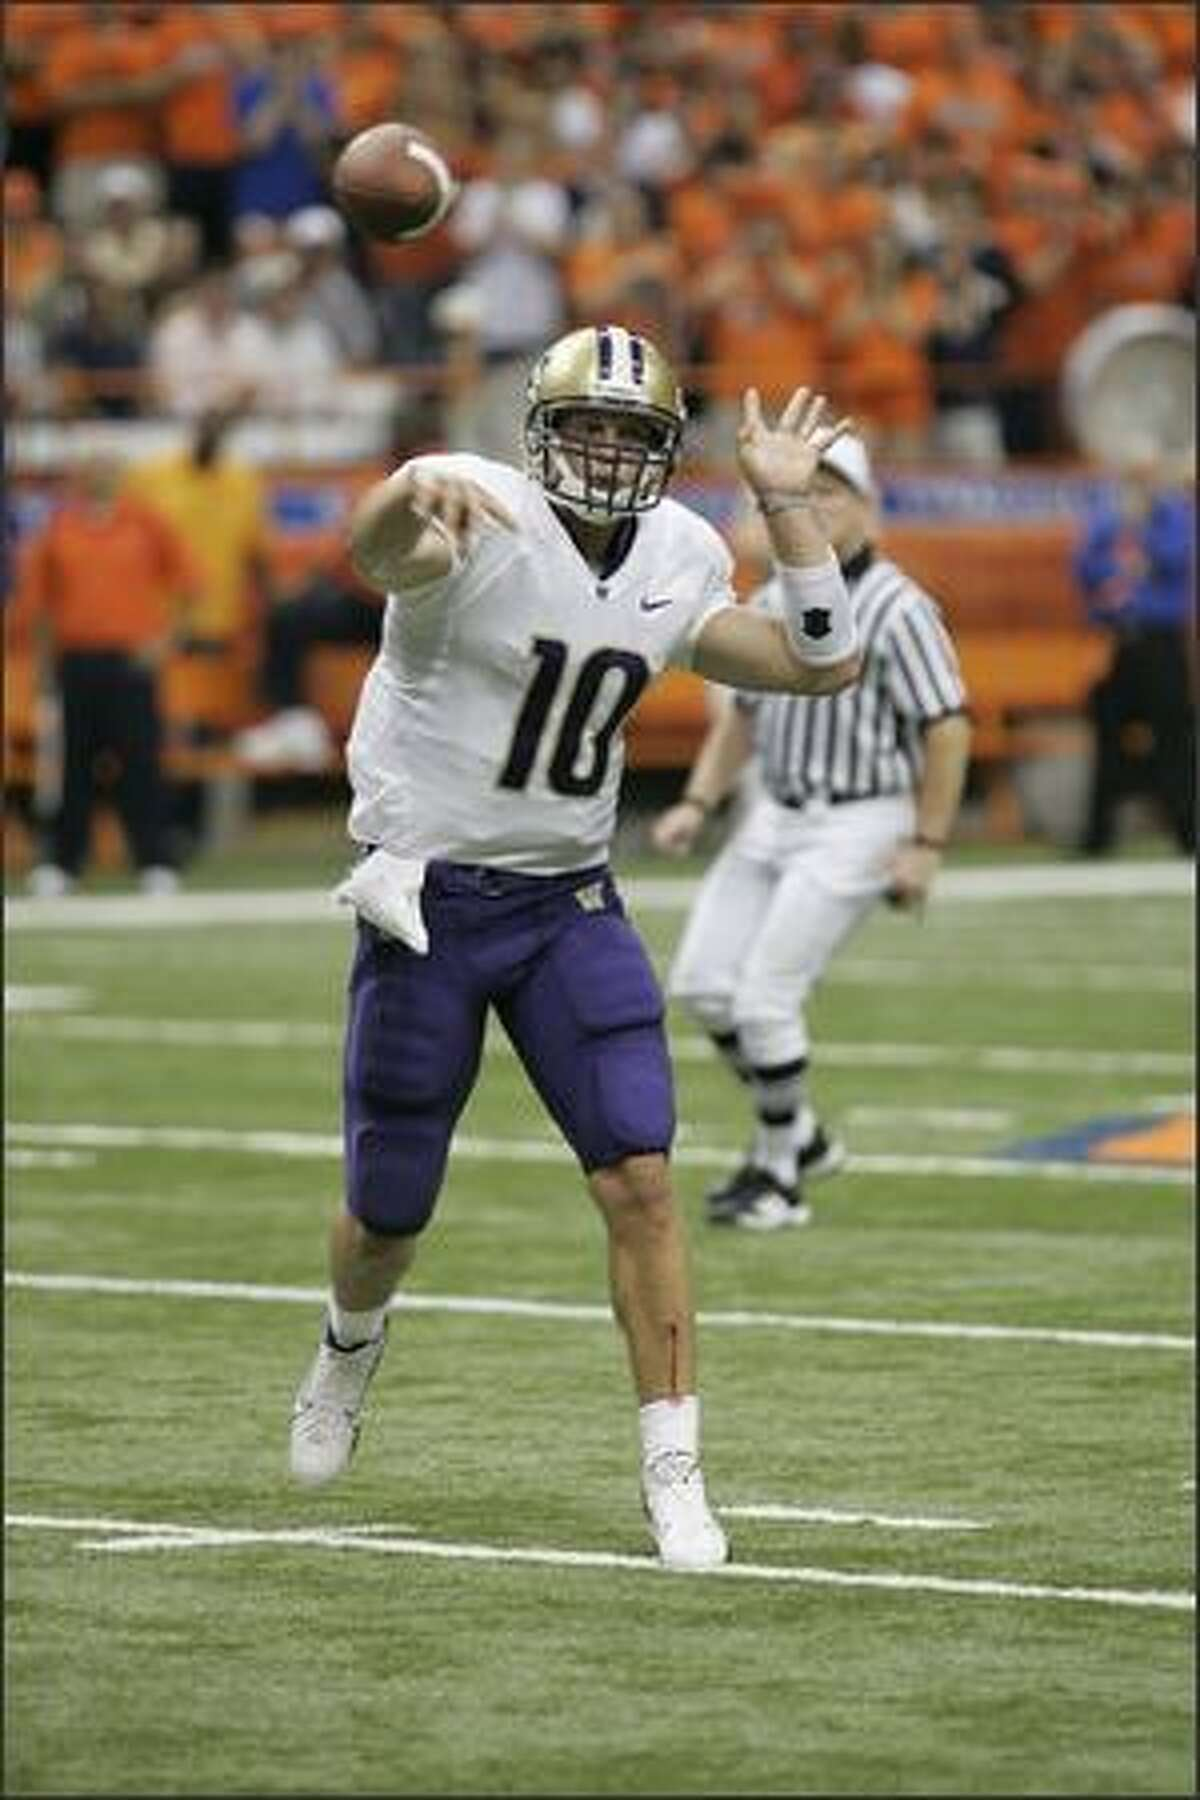 Washington Quarterback Jake Locker at Syracuse on Friday, Aug. 31, 2007, in Geddes, N.Y. (Photo for the Seatle Post-Intelligencer by Michael Okoniewski)